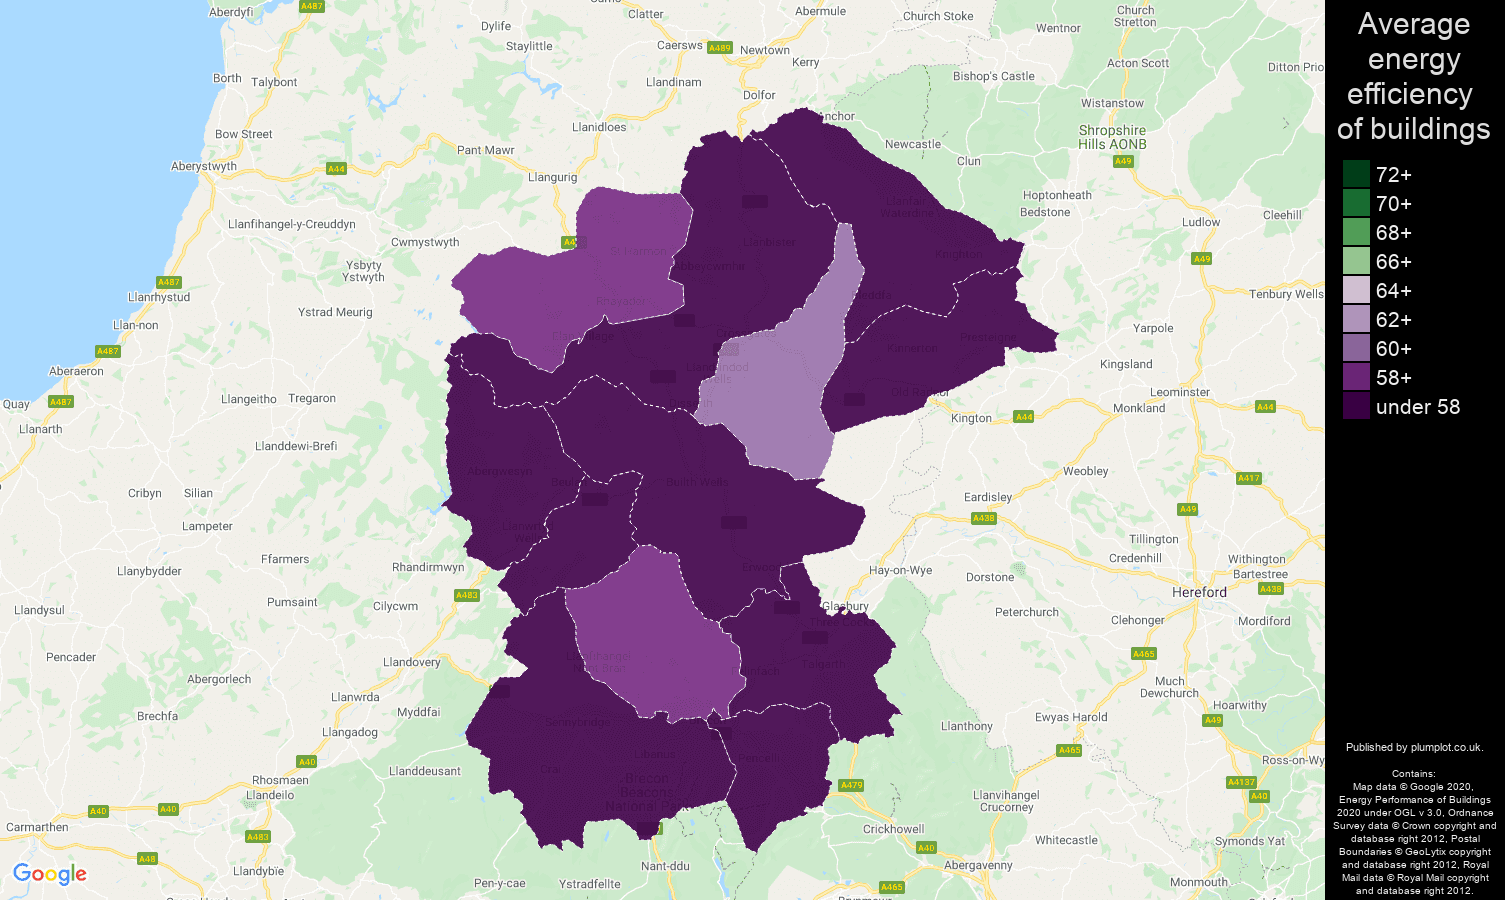 Llandrindod Wells map of energy efficiency of properties